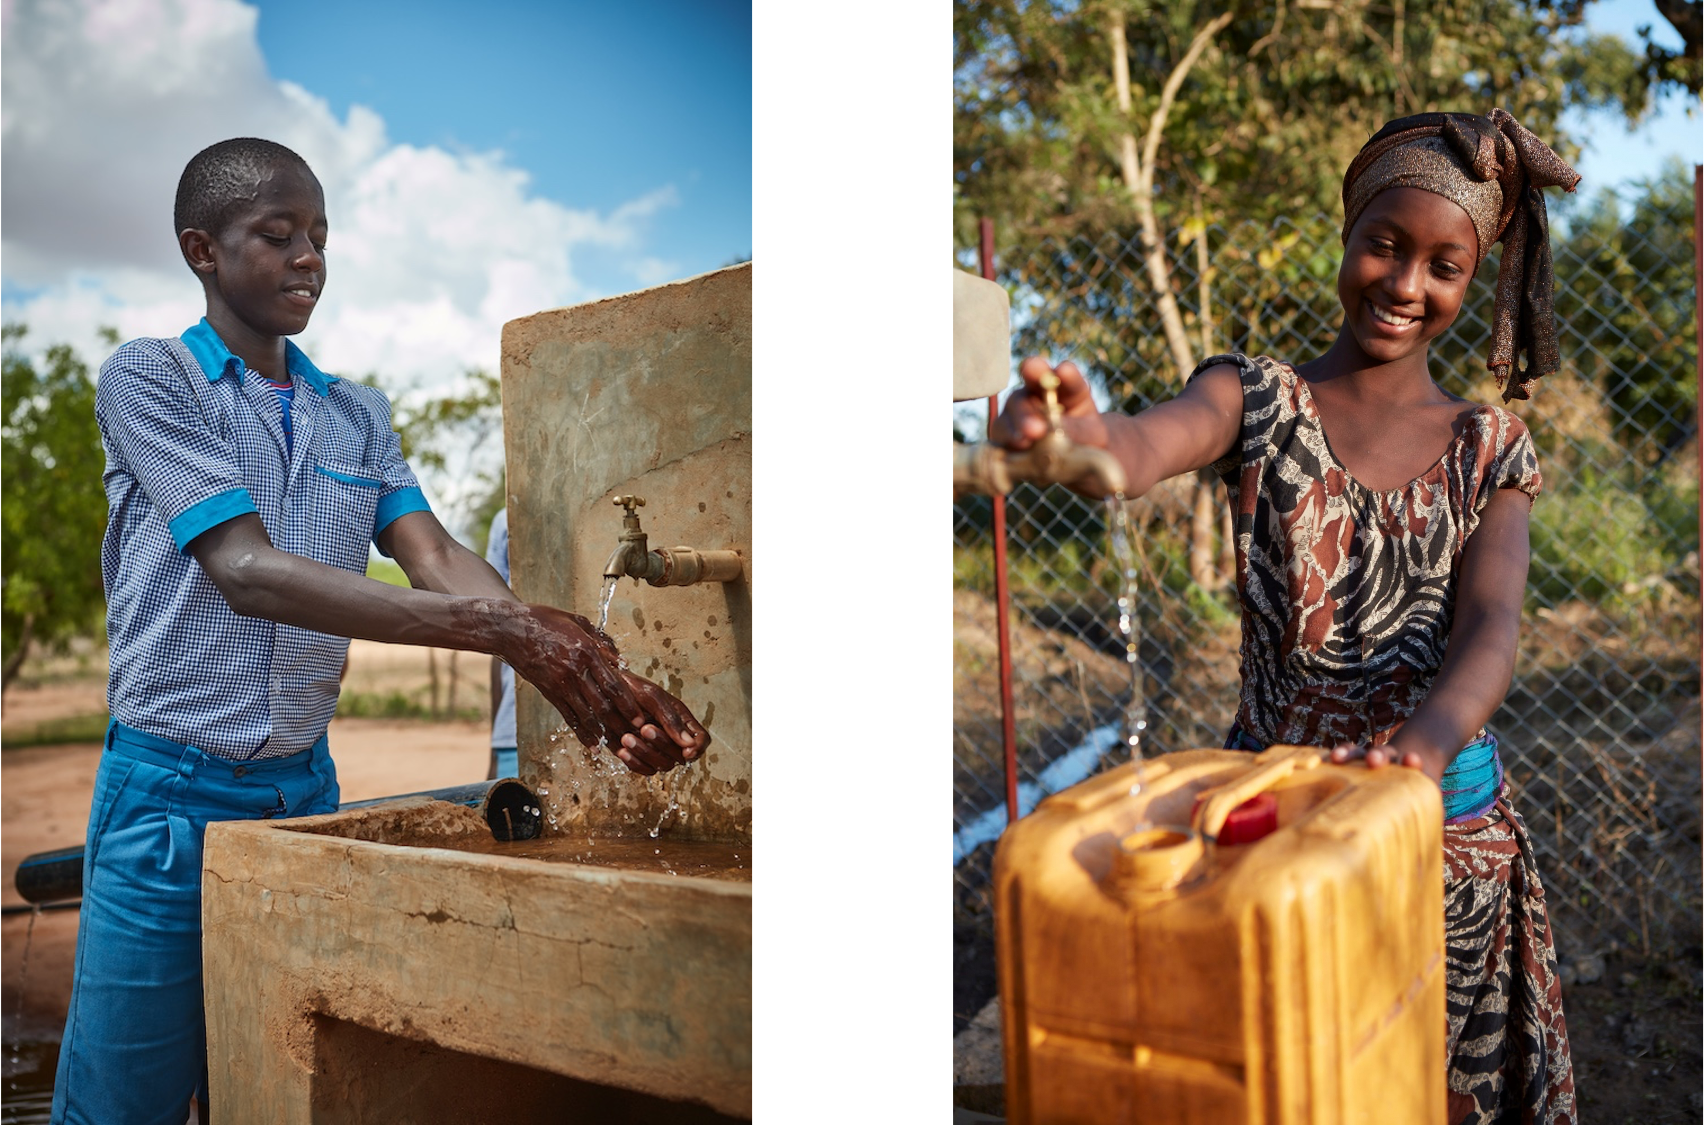 (Left) A student from Kitui West in Kenya washes his hands in a school with improved water access as part of the project executed by Amref Health Africa. Photo: Rooftop / GETF (Right) A girl from Bambasi collects water from a community water station built as part of a program executed to increase community resilience in the Woalita and South Omo zones of Southern Ethiopia, and implemented by iDE. Photo: Rooftop / GETF